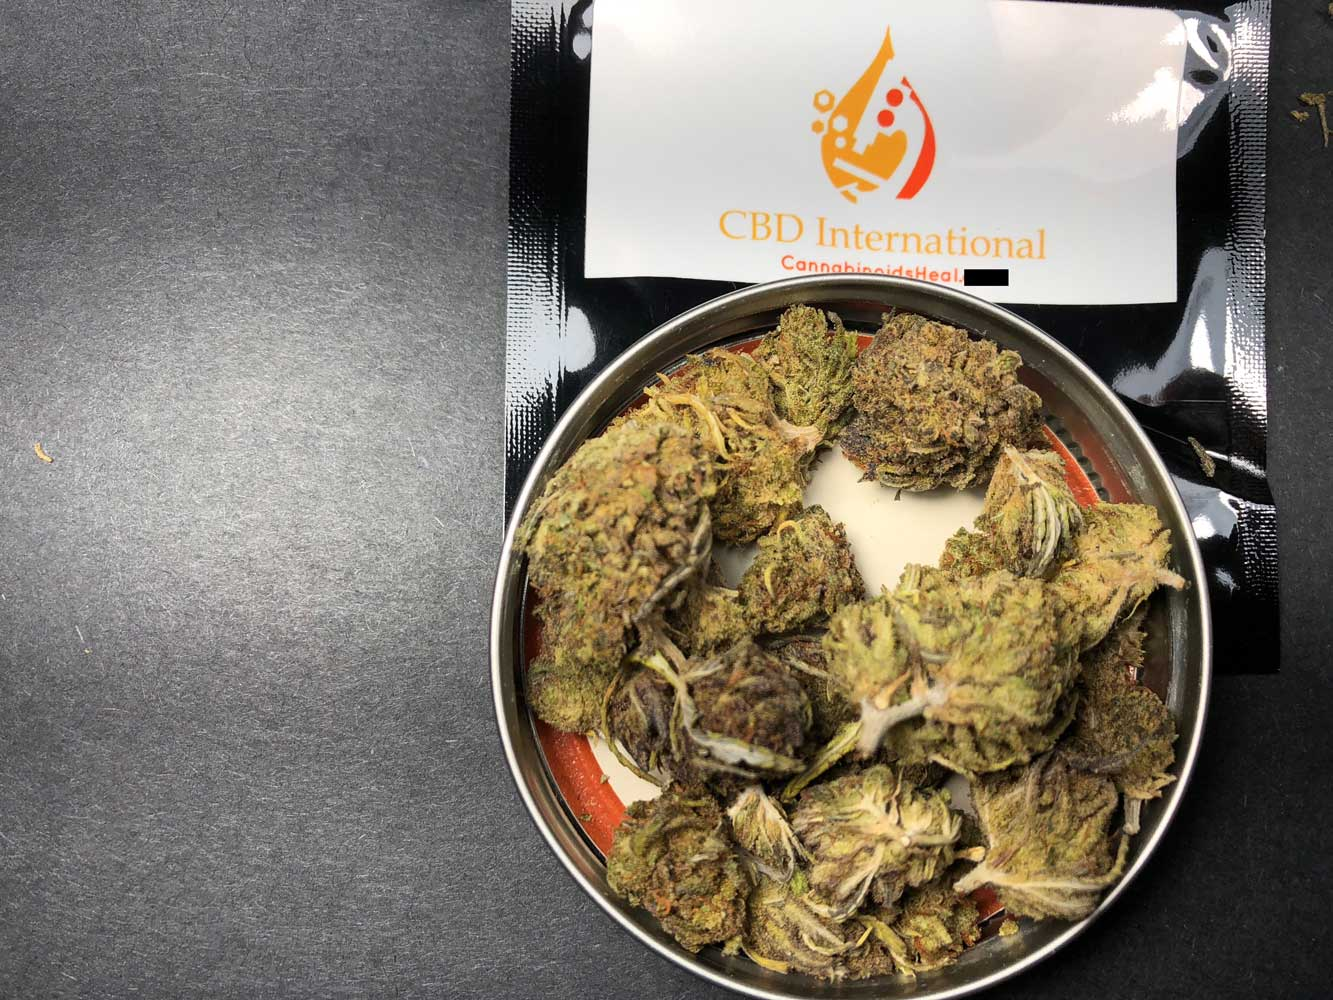 CBD Flower from CBD International